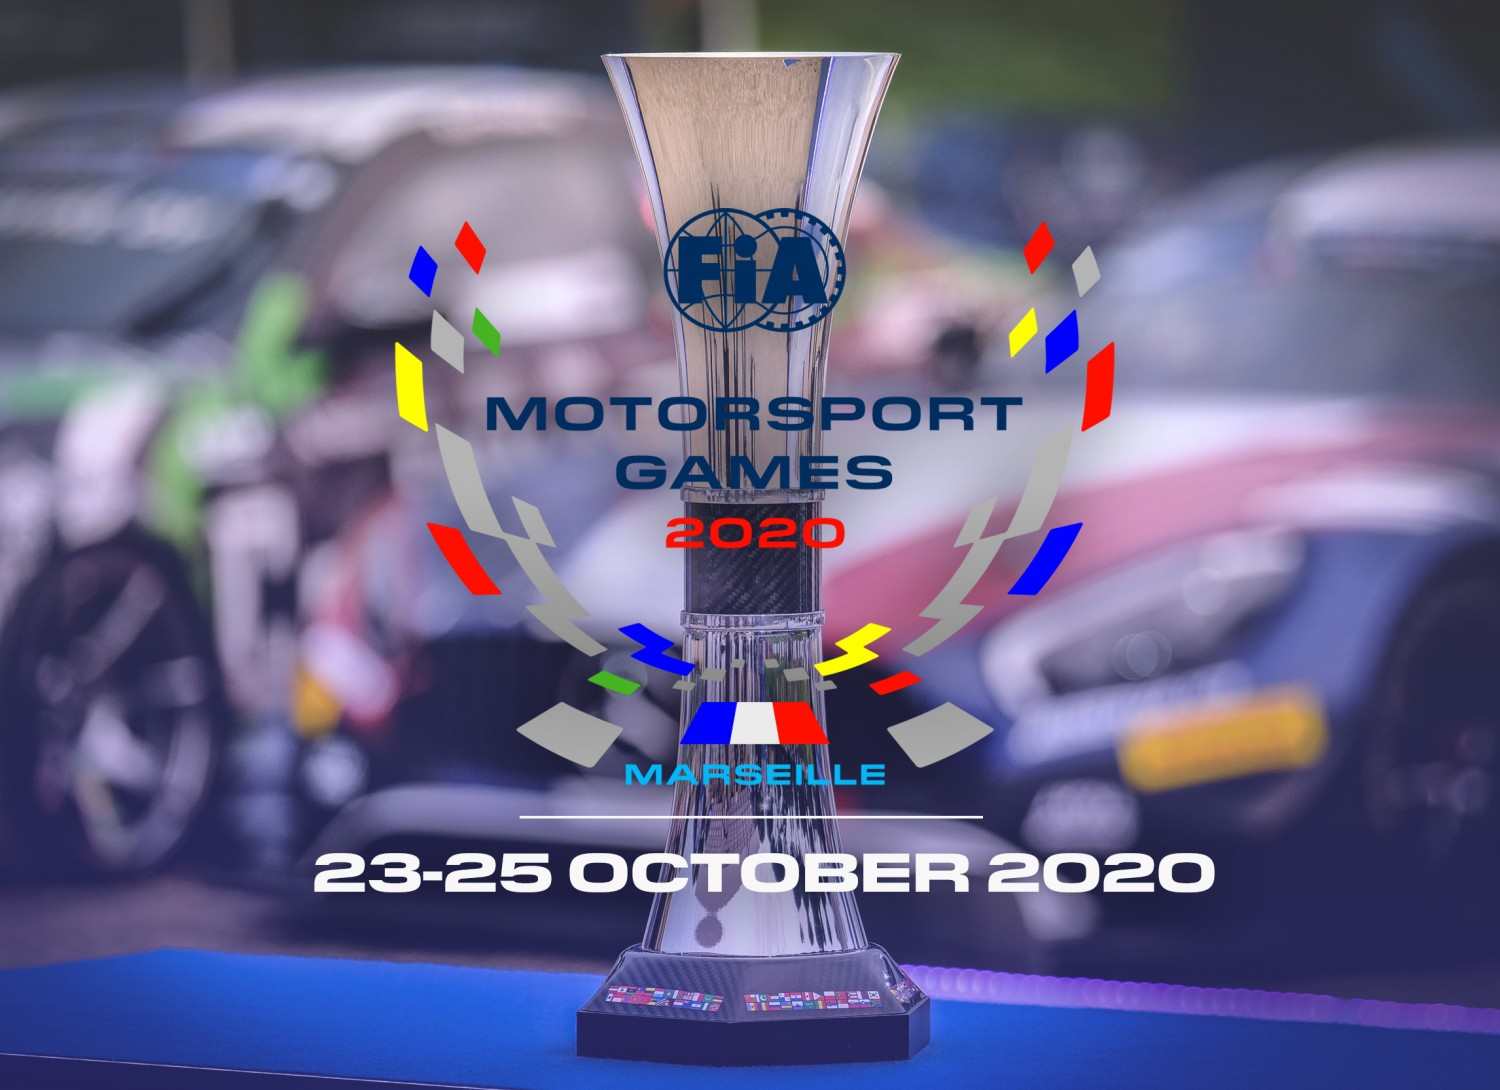 Marseille and Circuit Paul Ricard to host 2020 FIA Motorsport Games